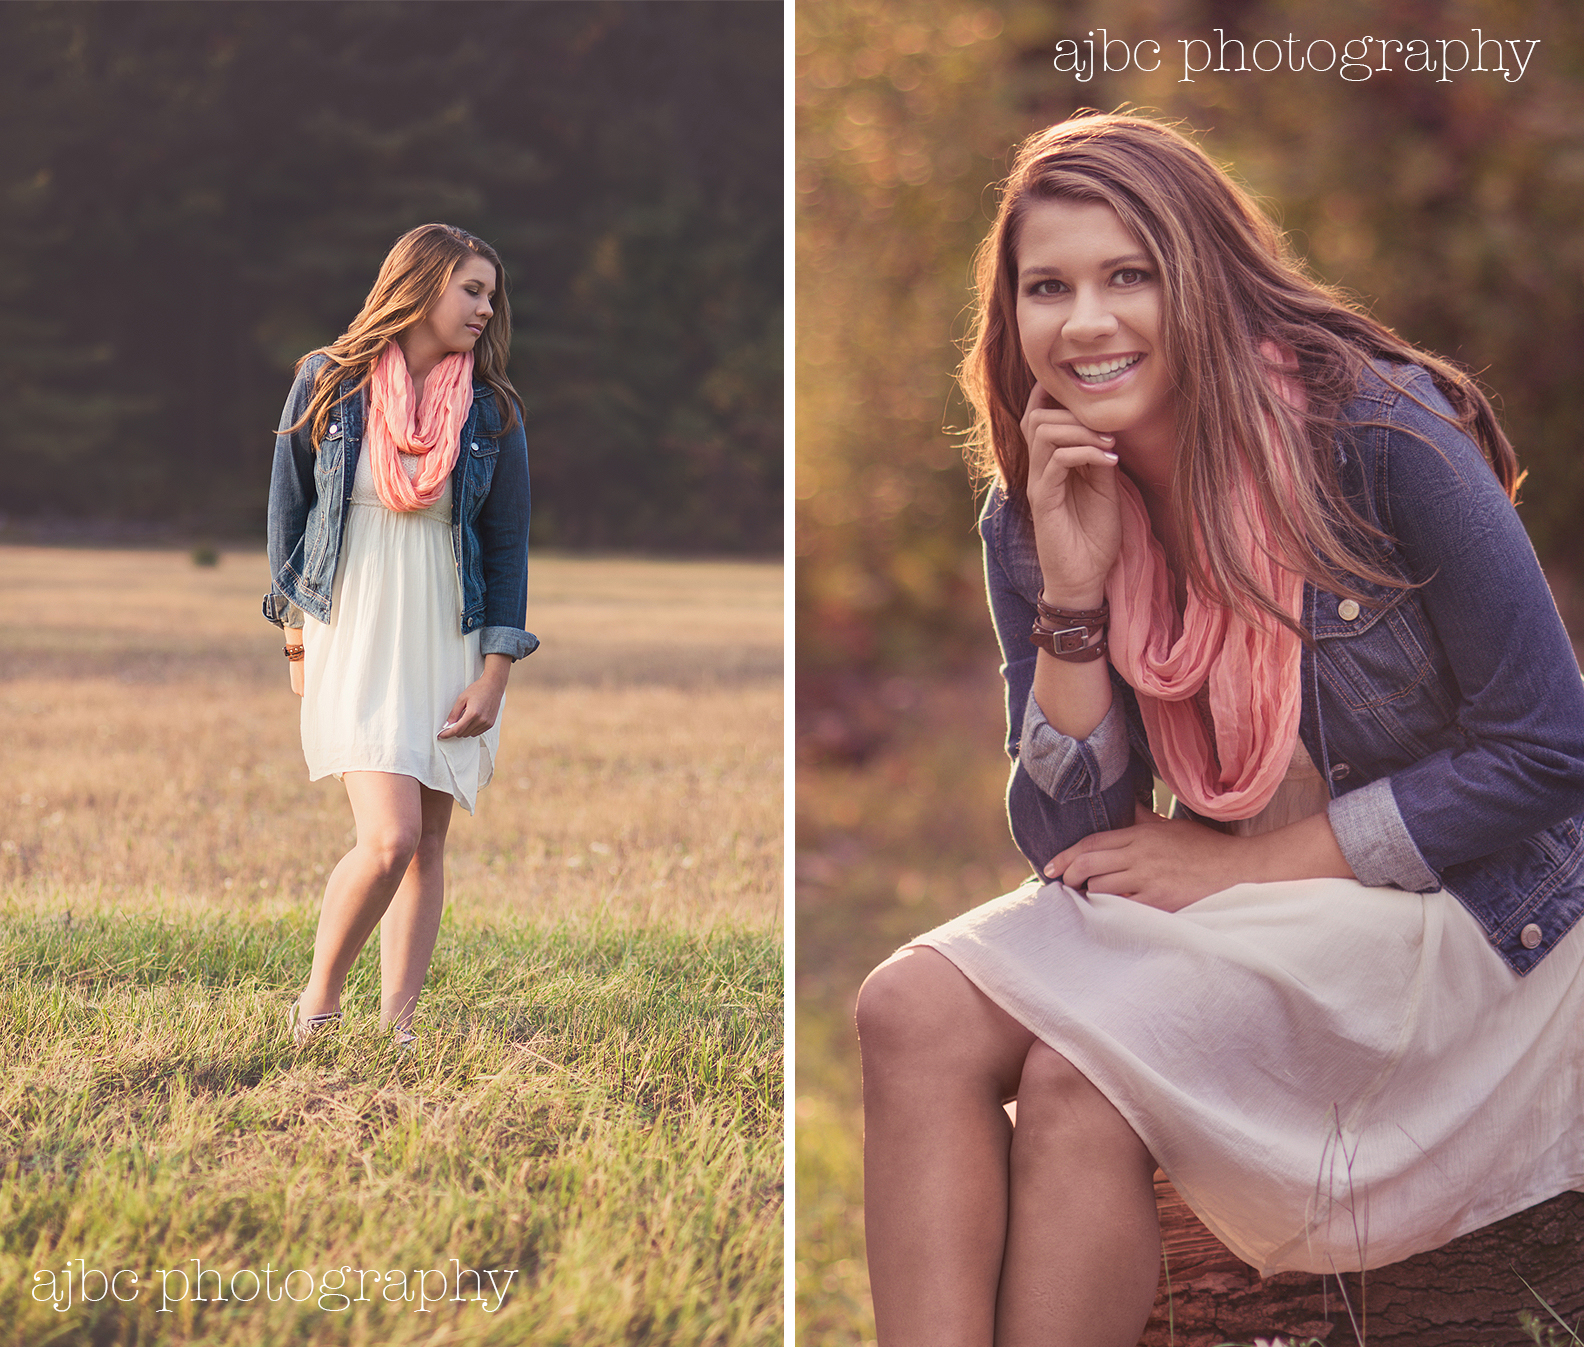 ajbcphotography-port-huron-michigan-photographer-senior-portraits-outdoor-fashion